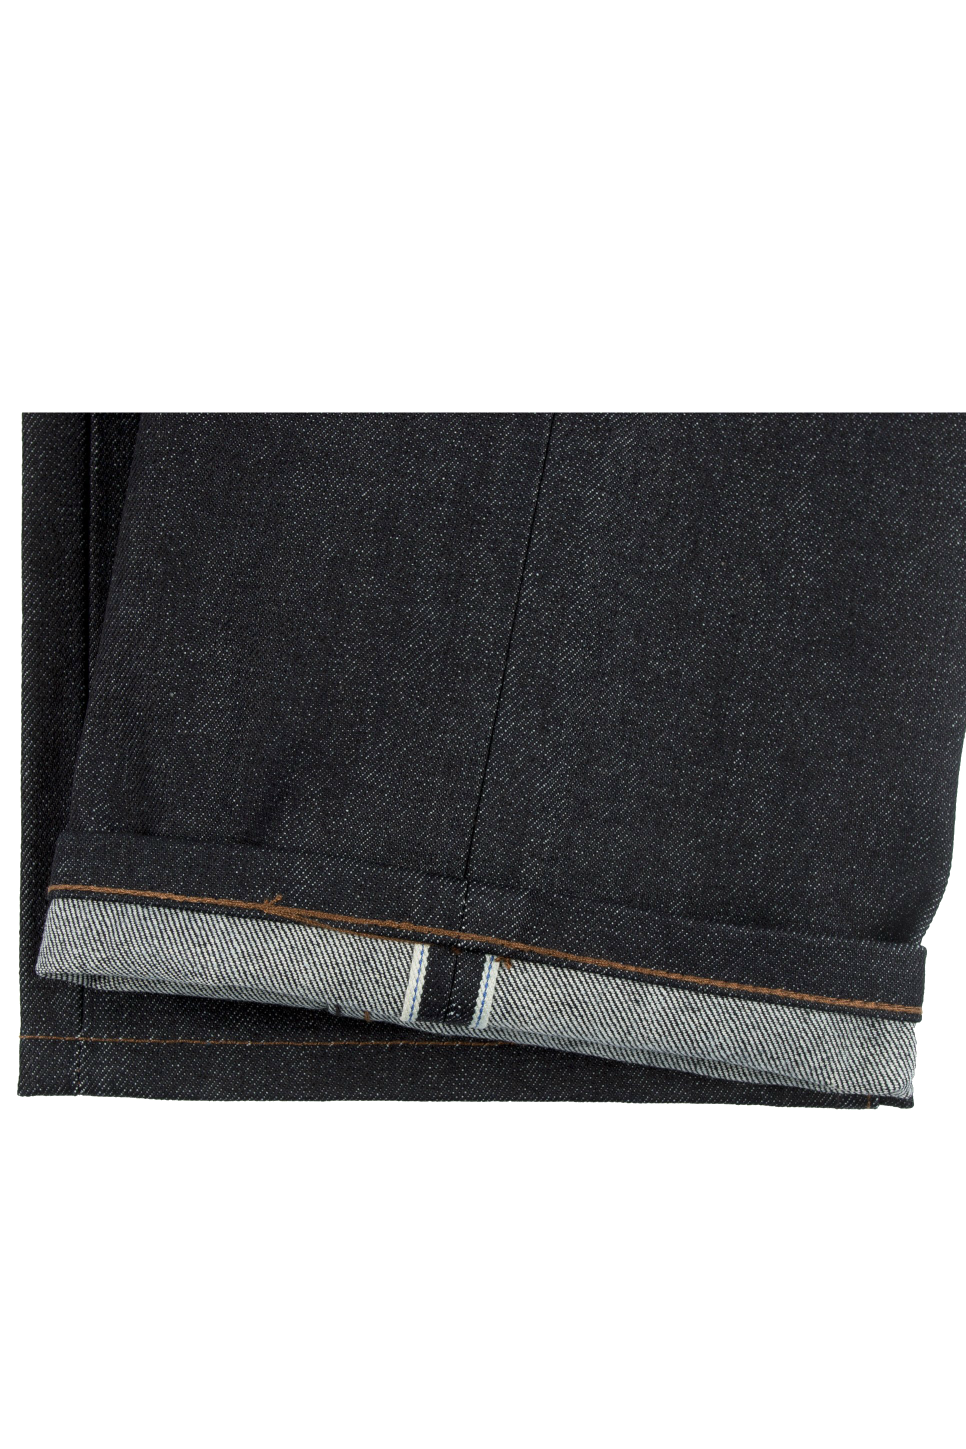 Unbranded - UB401 Tight Fit - Back Detail